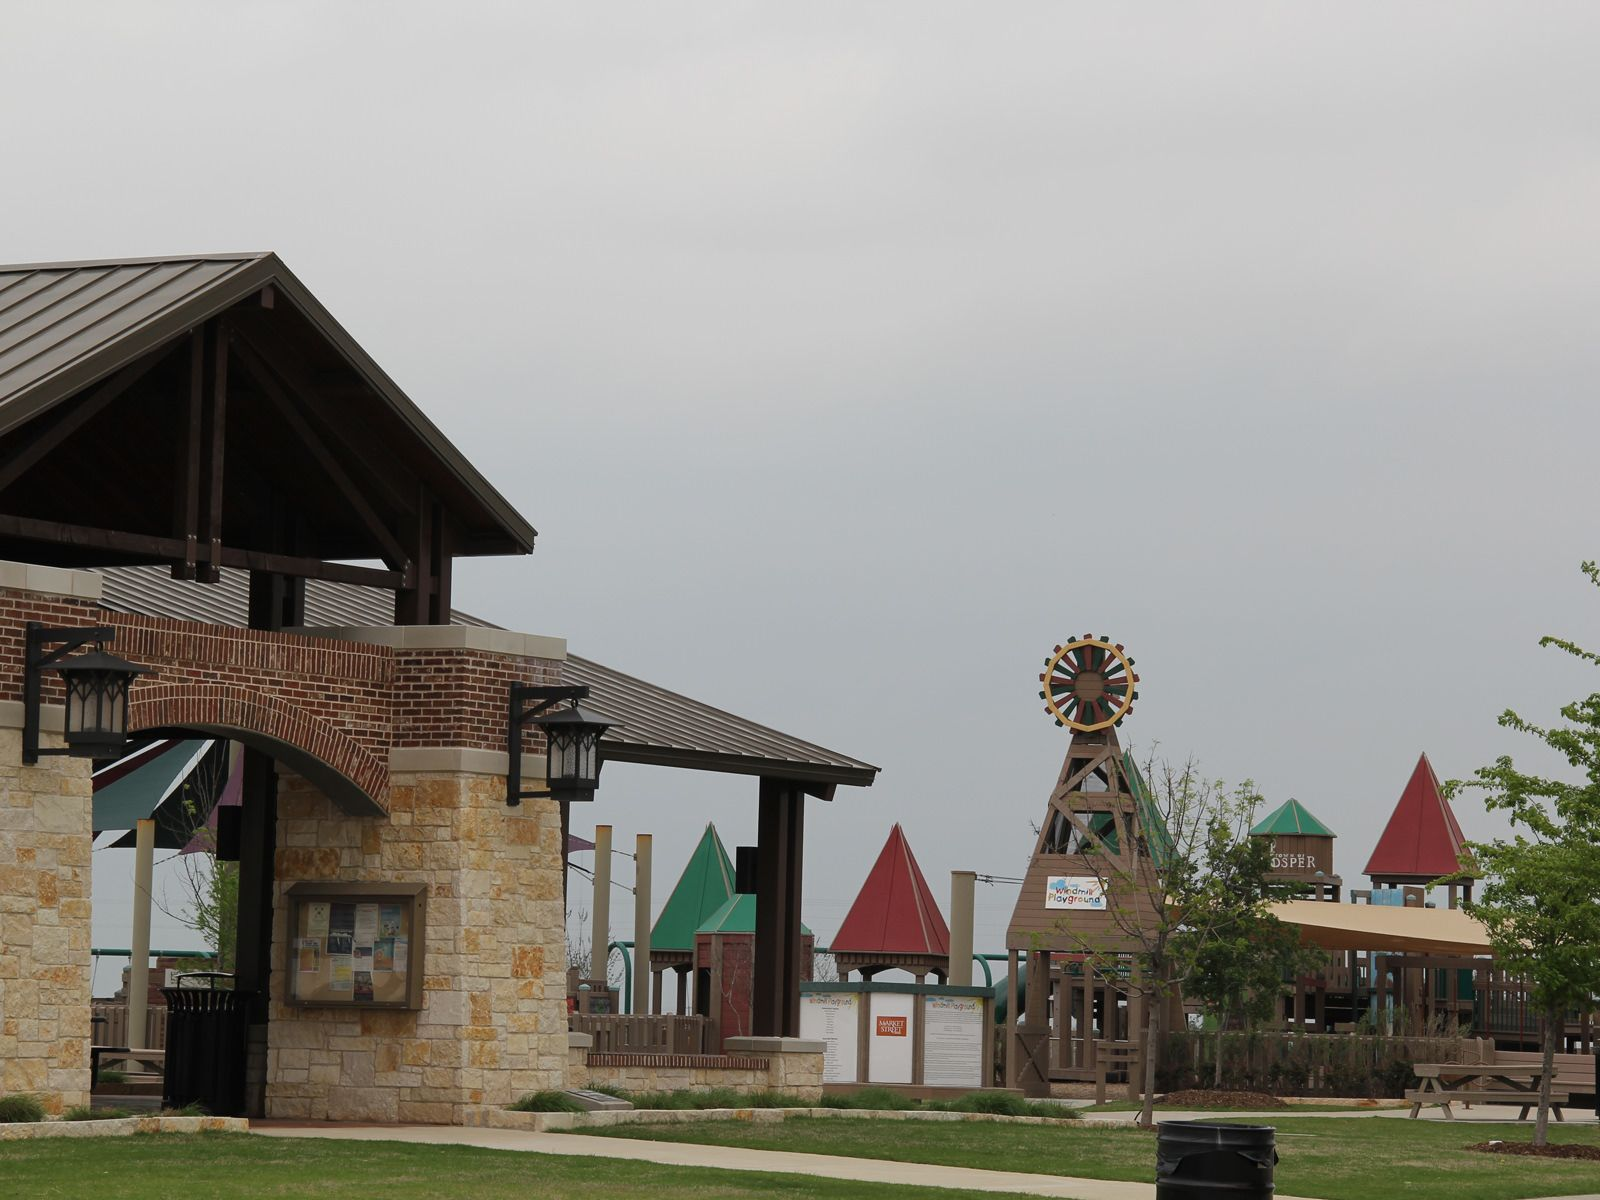 Take in the outdoors with Frontier Park just a few miles away.